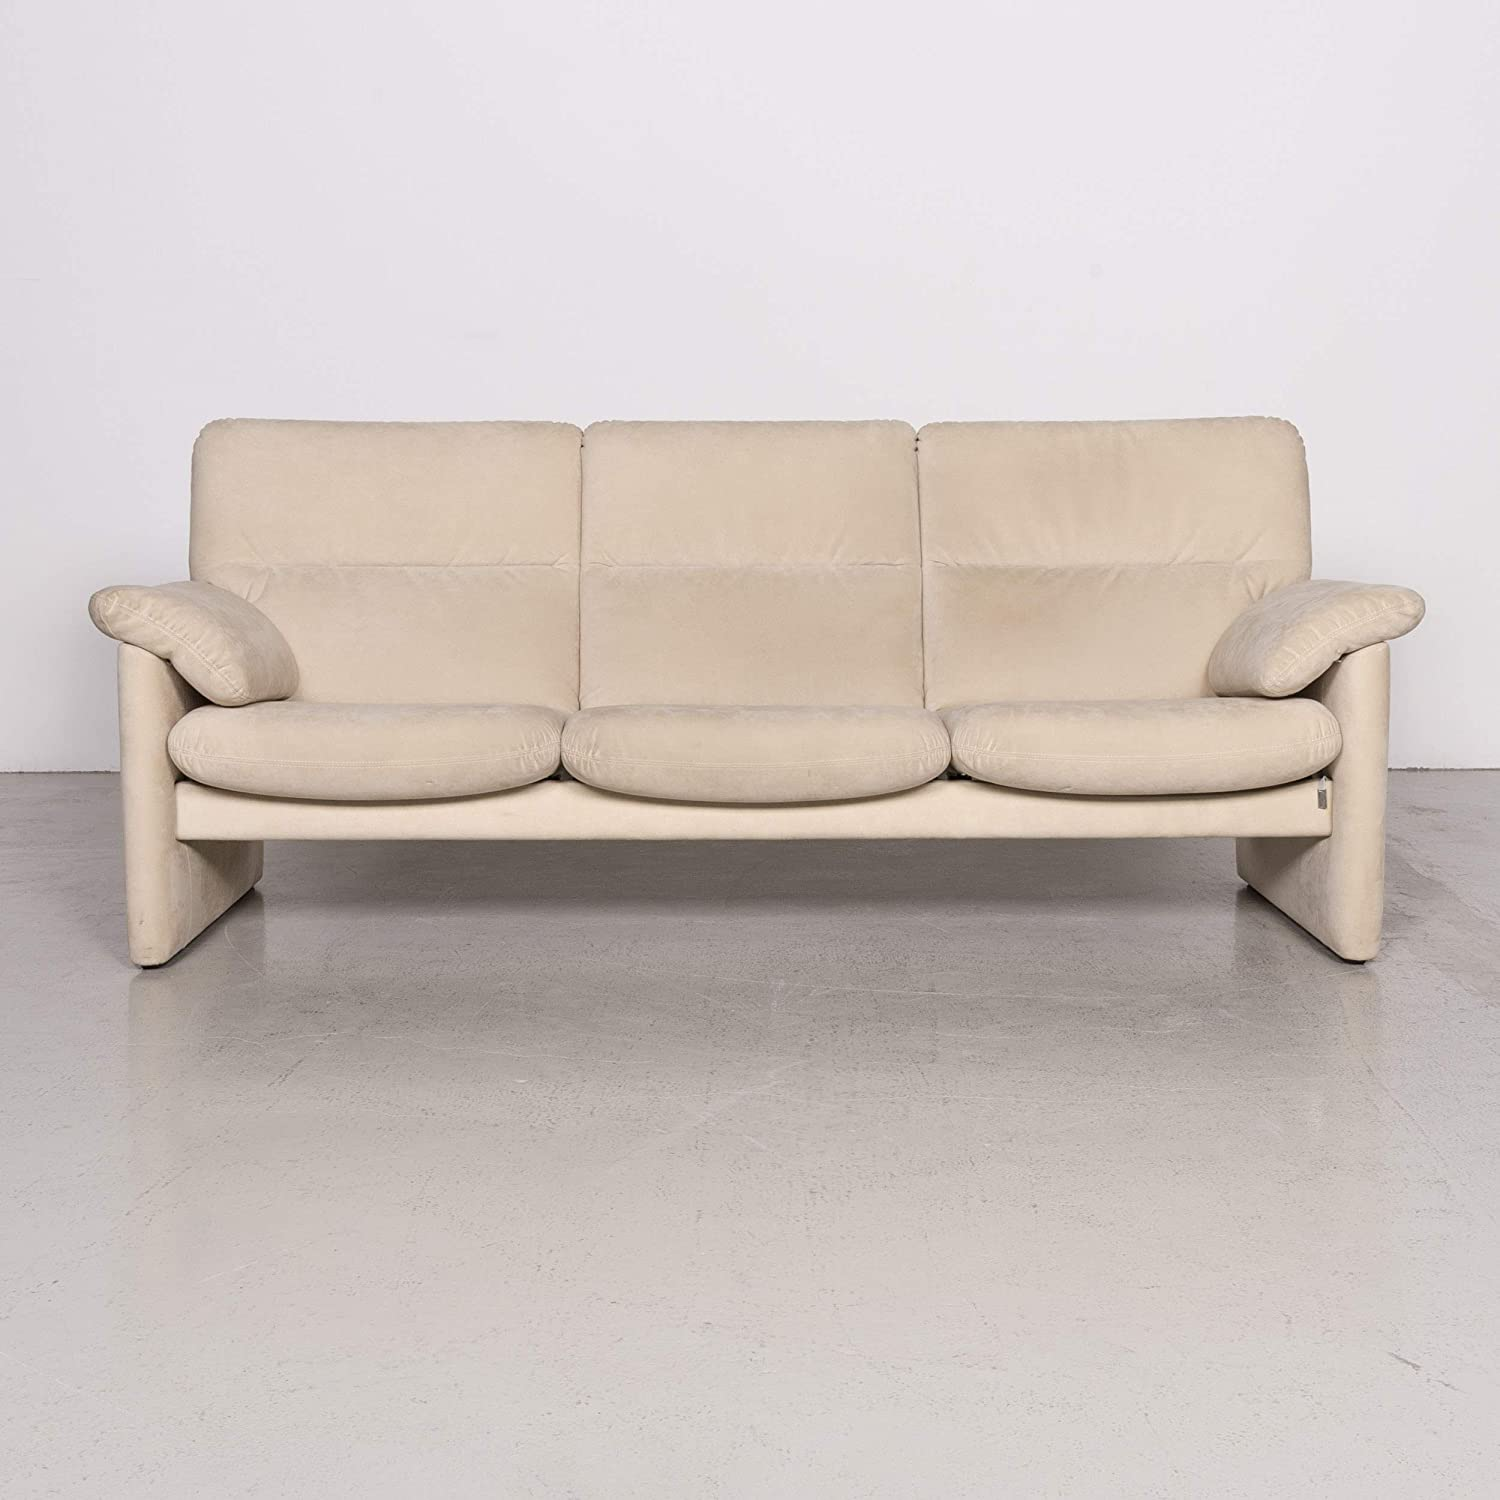 Full Size of Erpo Designer Stoff Sofa Creme Couch Relafunktion 7548 Sanaa Liege Kunstleder Rolf Benz 3 Sitzer Boxspring Angebote Hay Mags Terassen Big Poco Landhaus Sofa Erpo Sofa